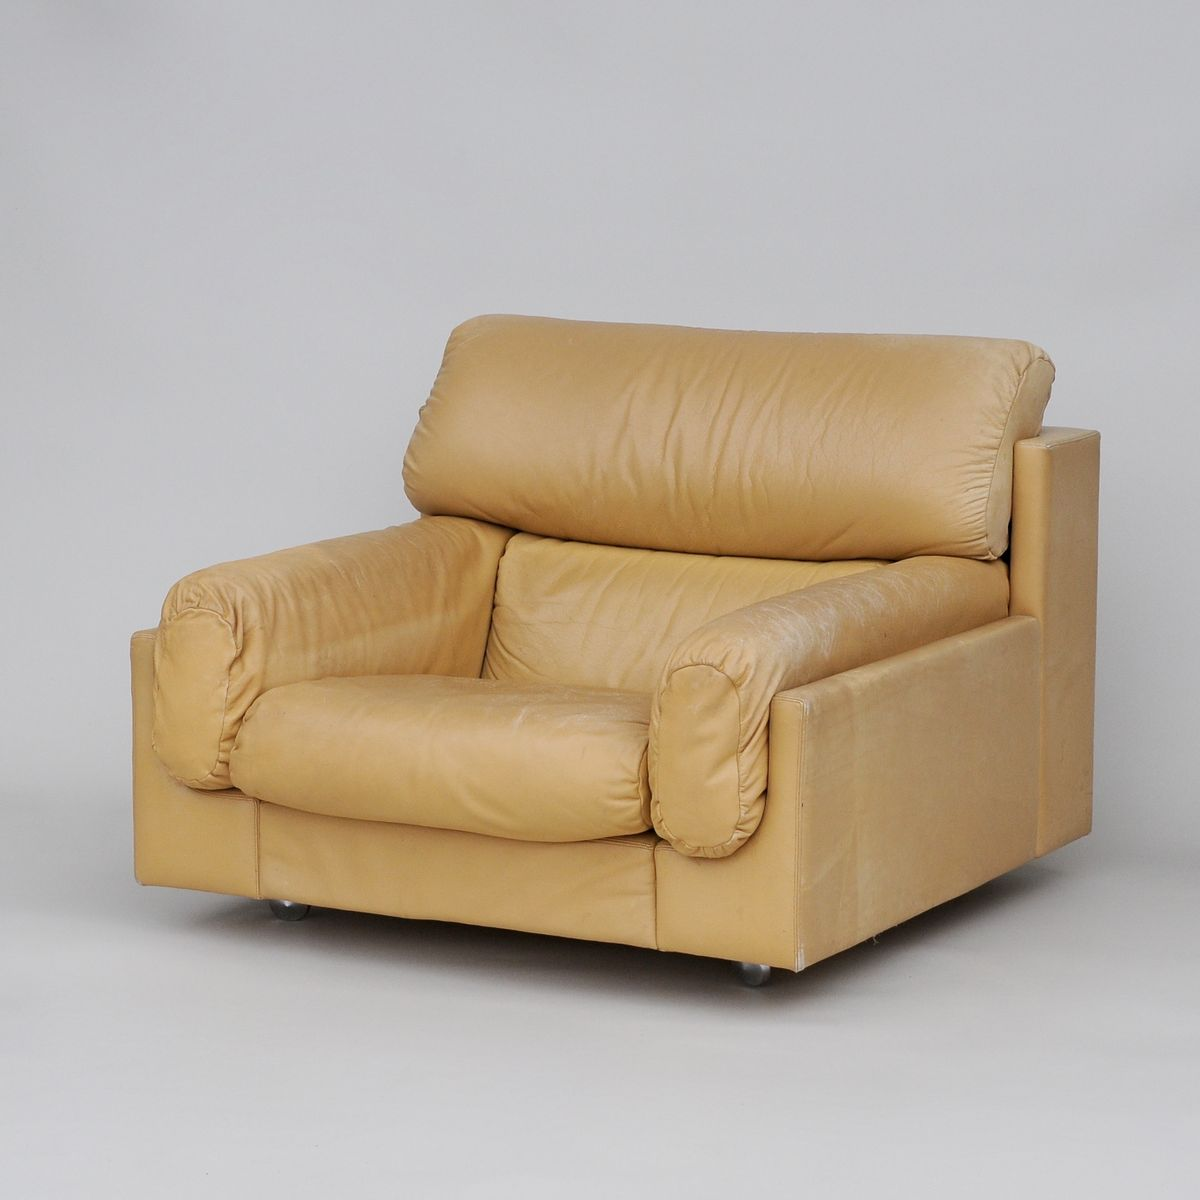 Large cream colored vintage leather armchair for sale at for Large armchair